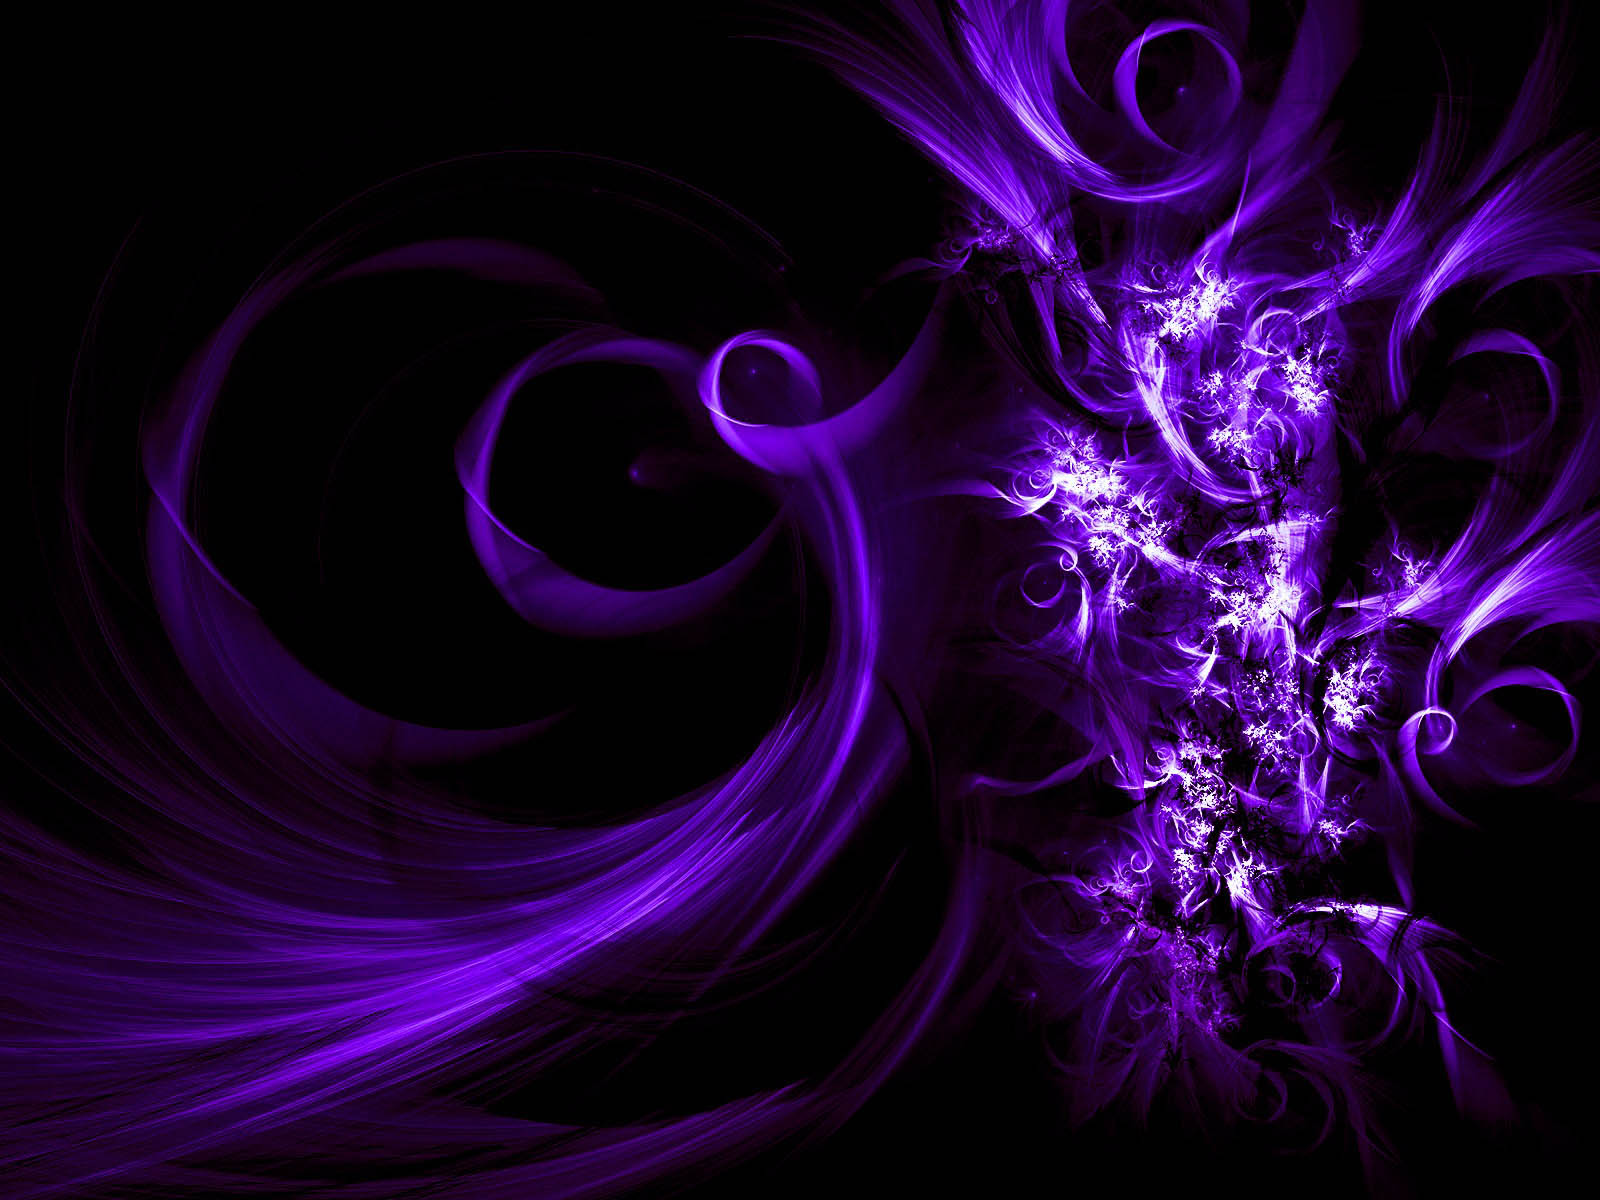 wallpapers Purple Abstract Wallpapers 1600x1200